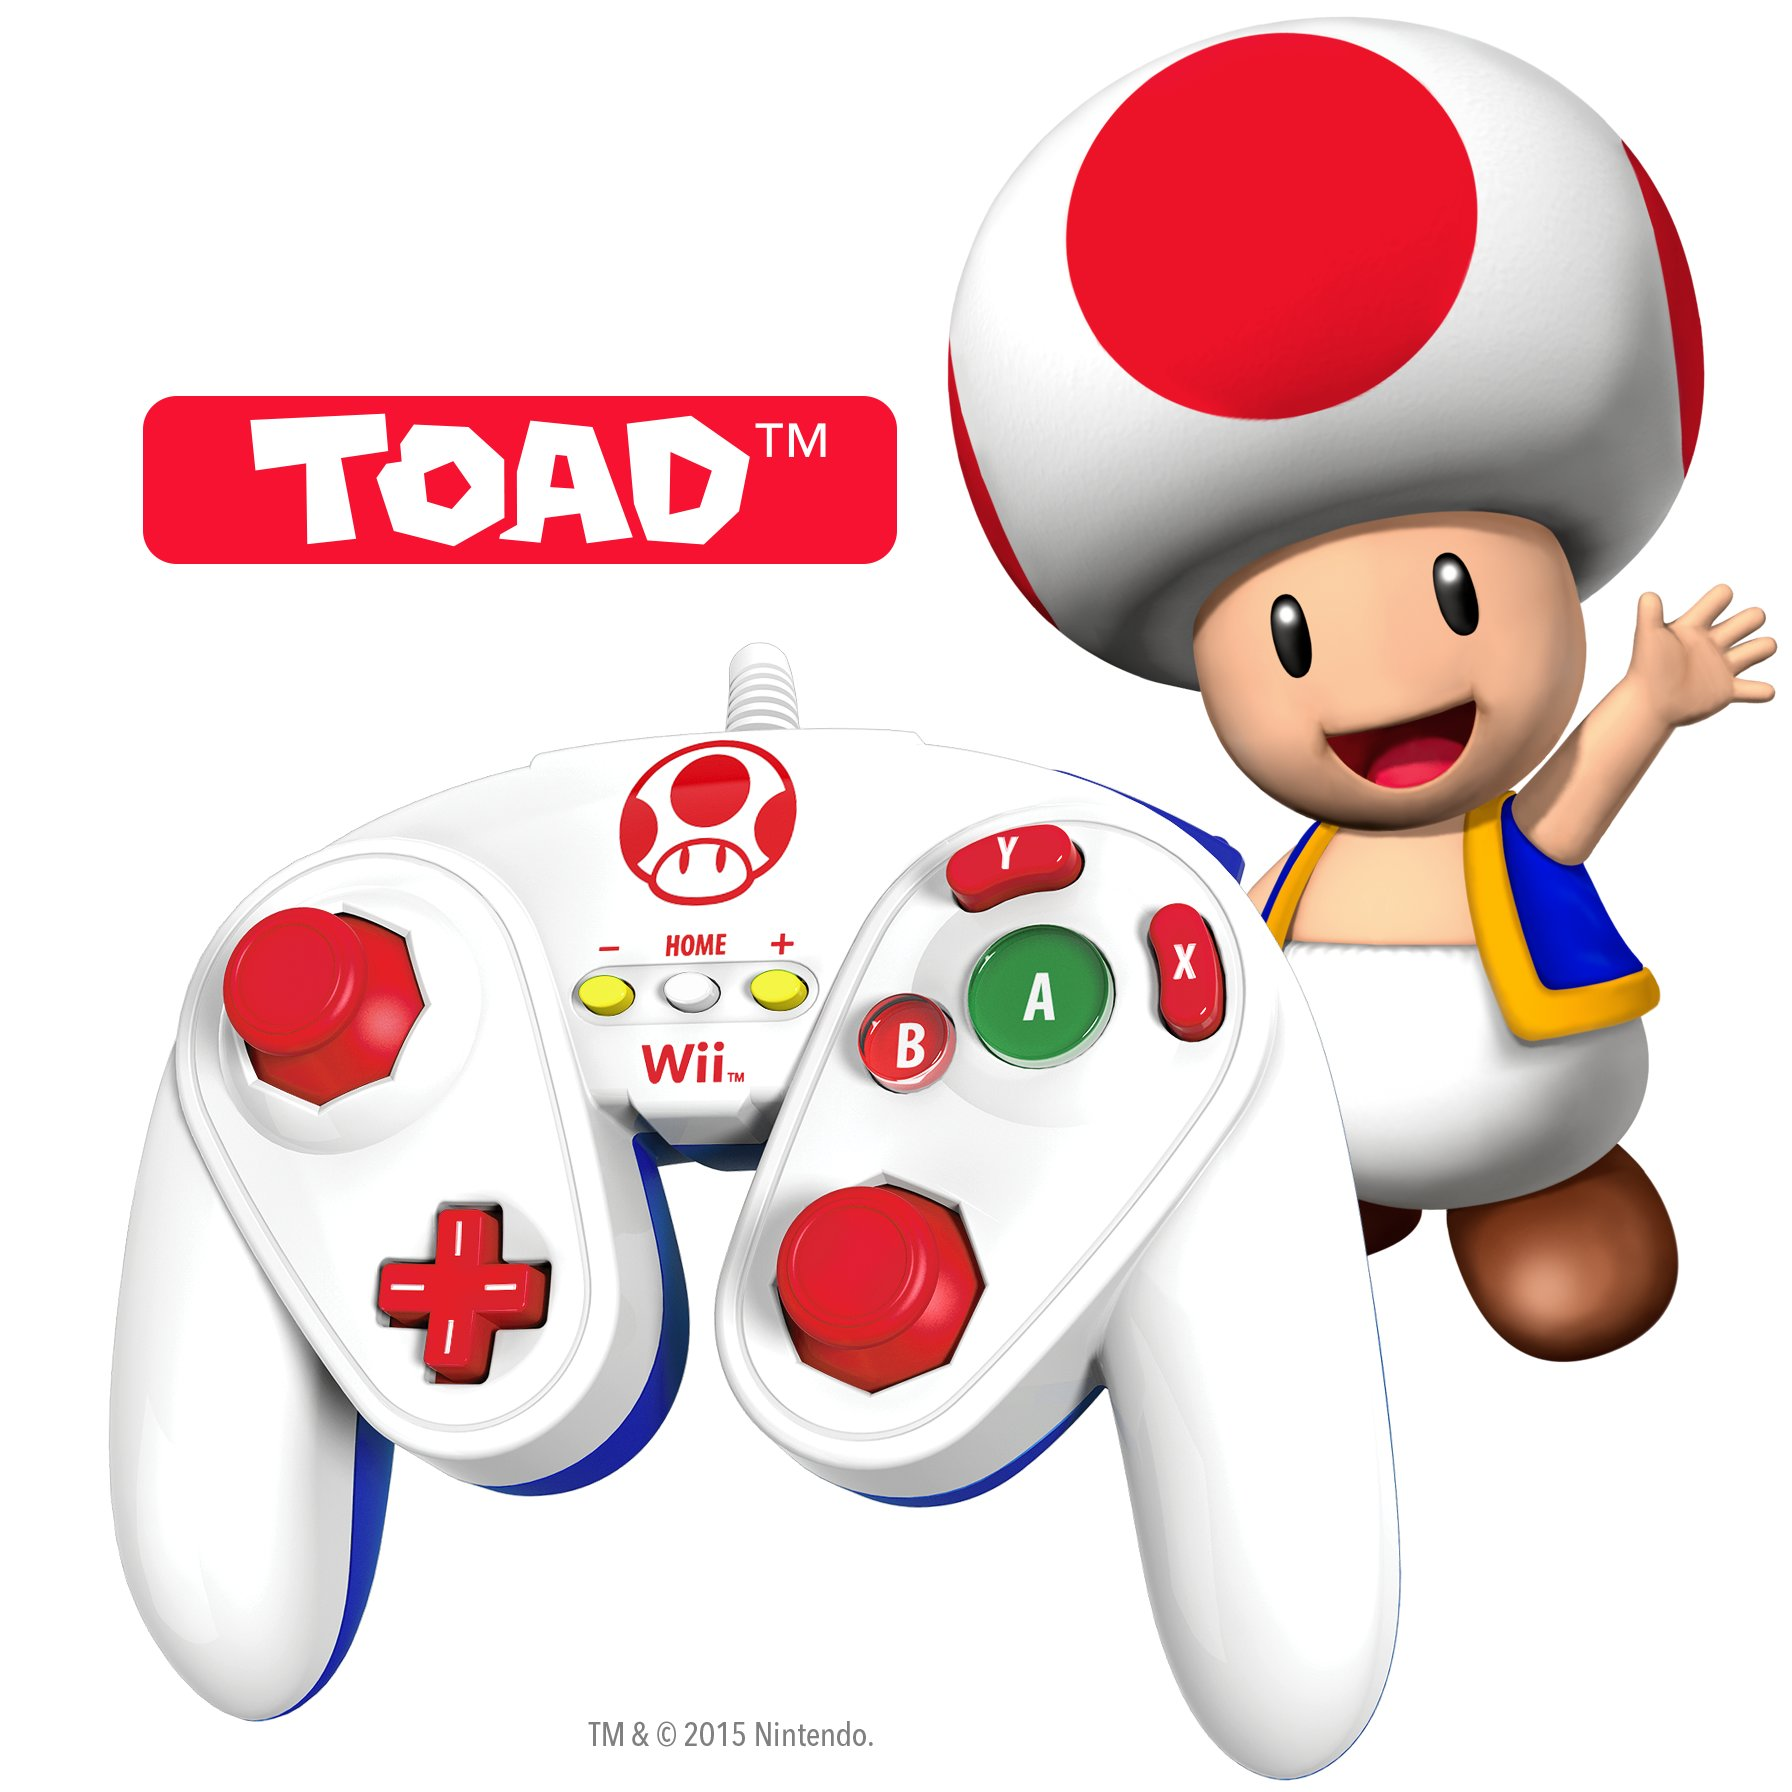 http://nintendoeverything.com/wp-content/gallery/pdp-fight-pads_1/Wired_20Fight_20Pad_20for_20Wii_20U_20-_20Toad_20P.jpg